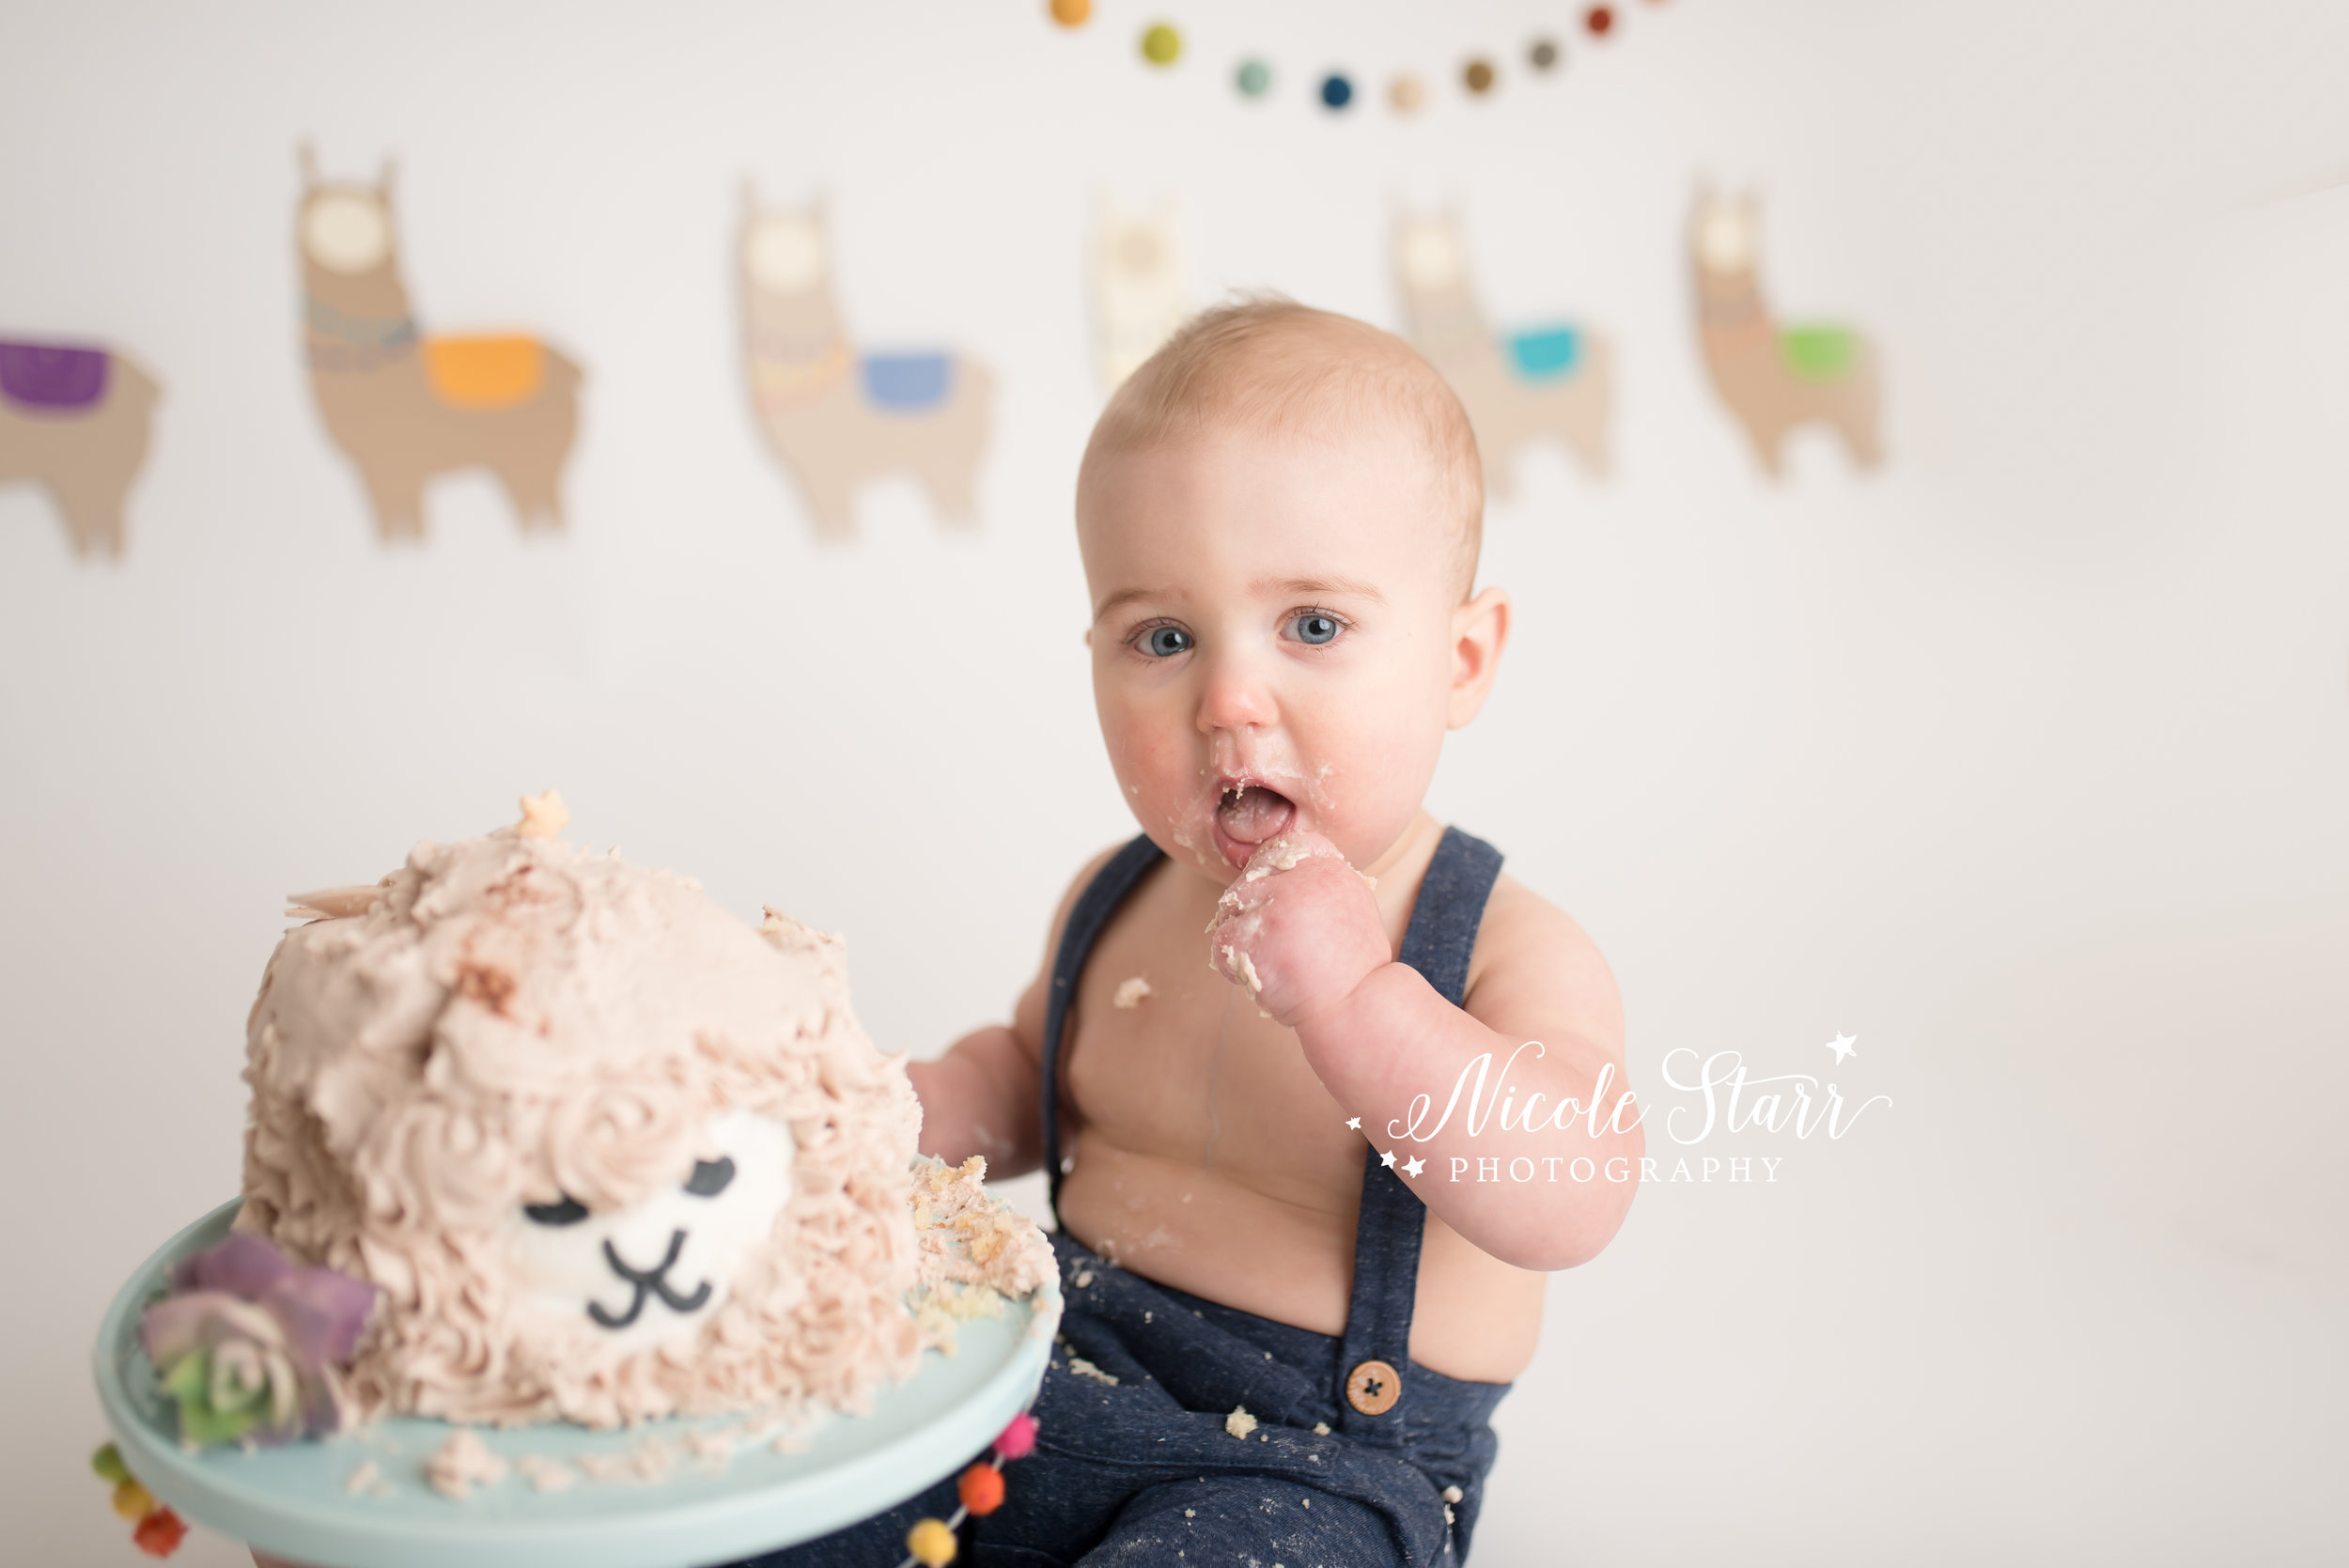 llama cake smash, nicole starr photography, saratoga springs cake smash photographer-9.jpg